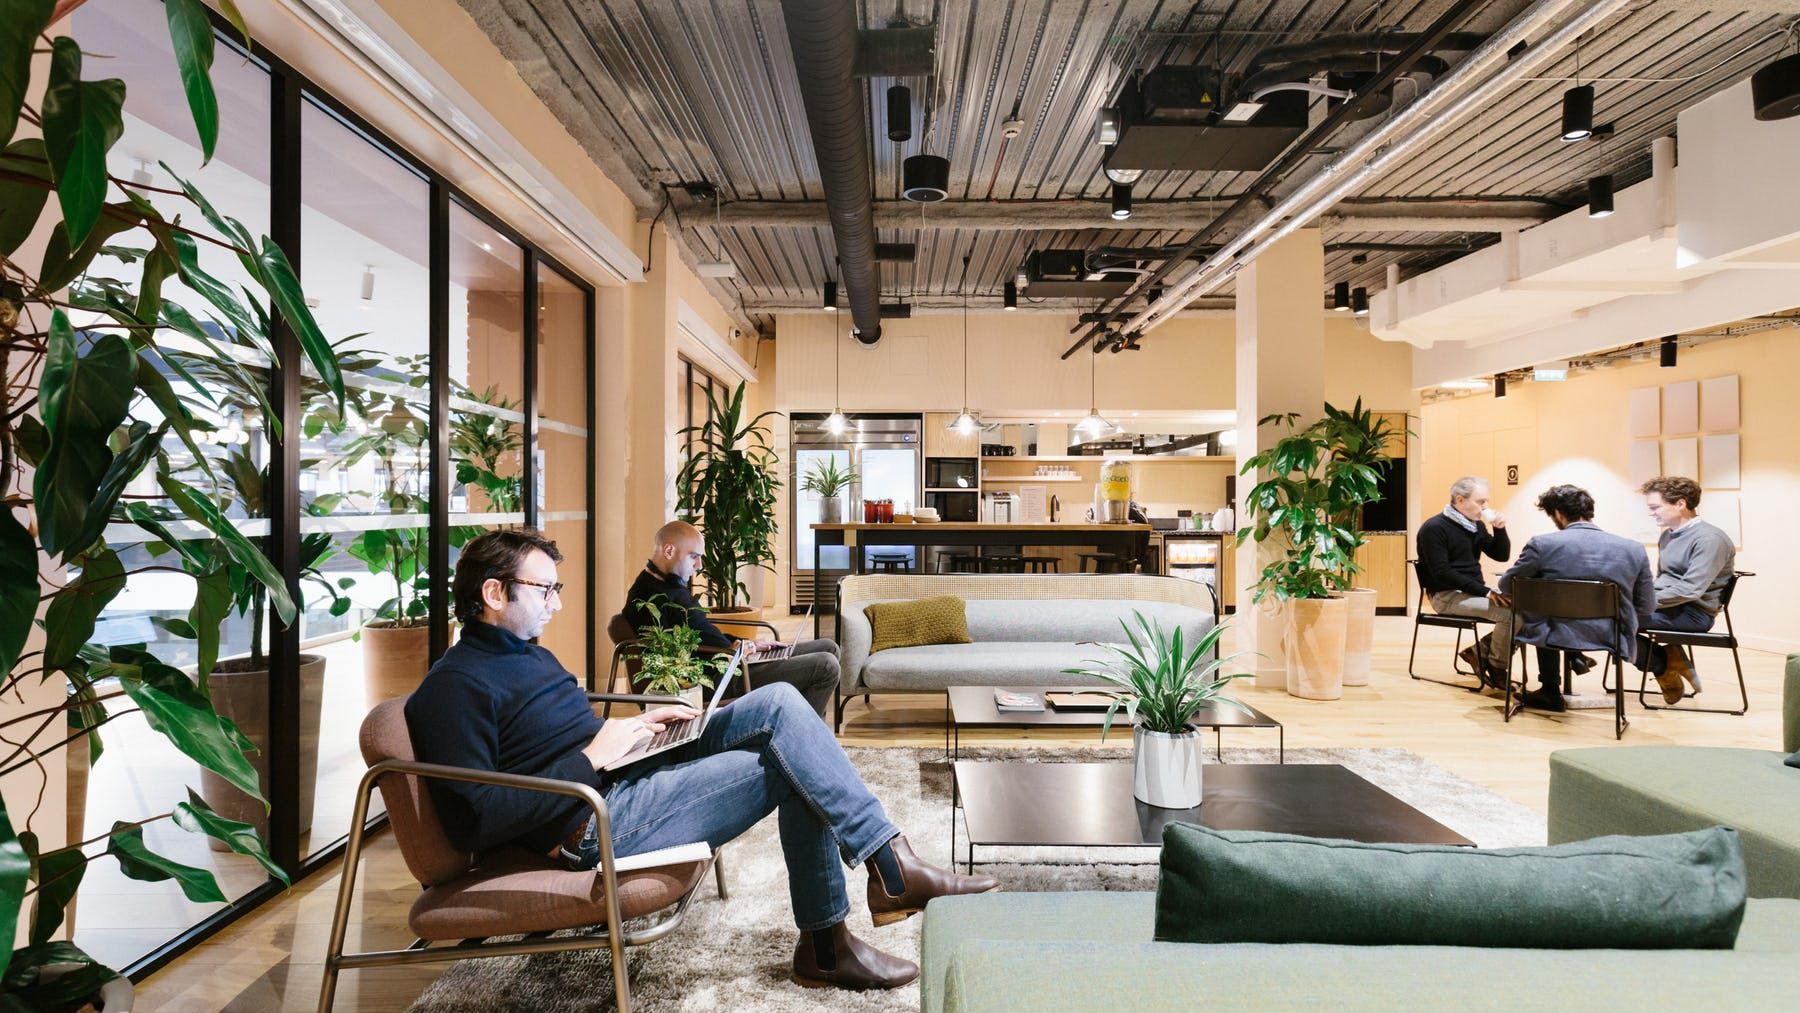 20180206_WeWork_Coeur_Marais_-_Common_Areas_-_Couch_Area-3